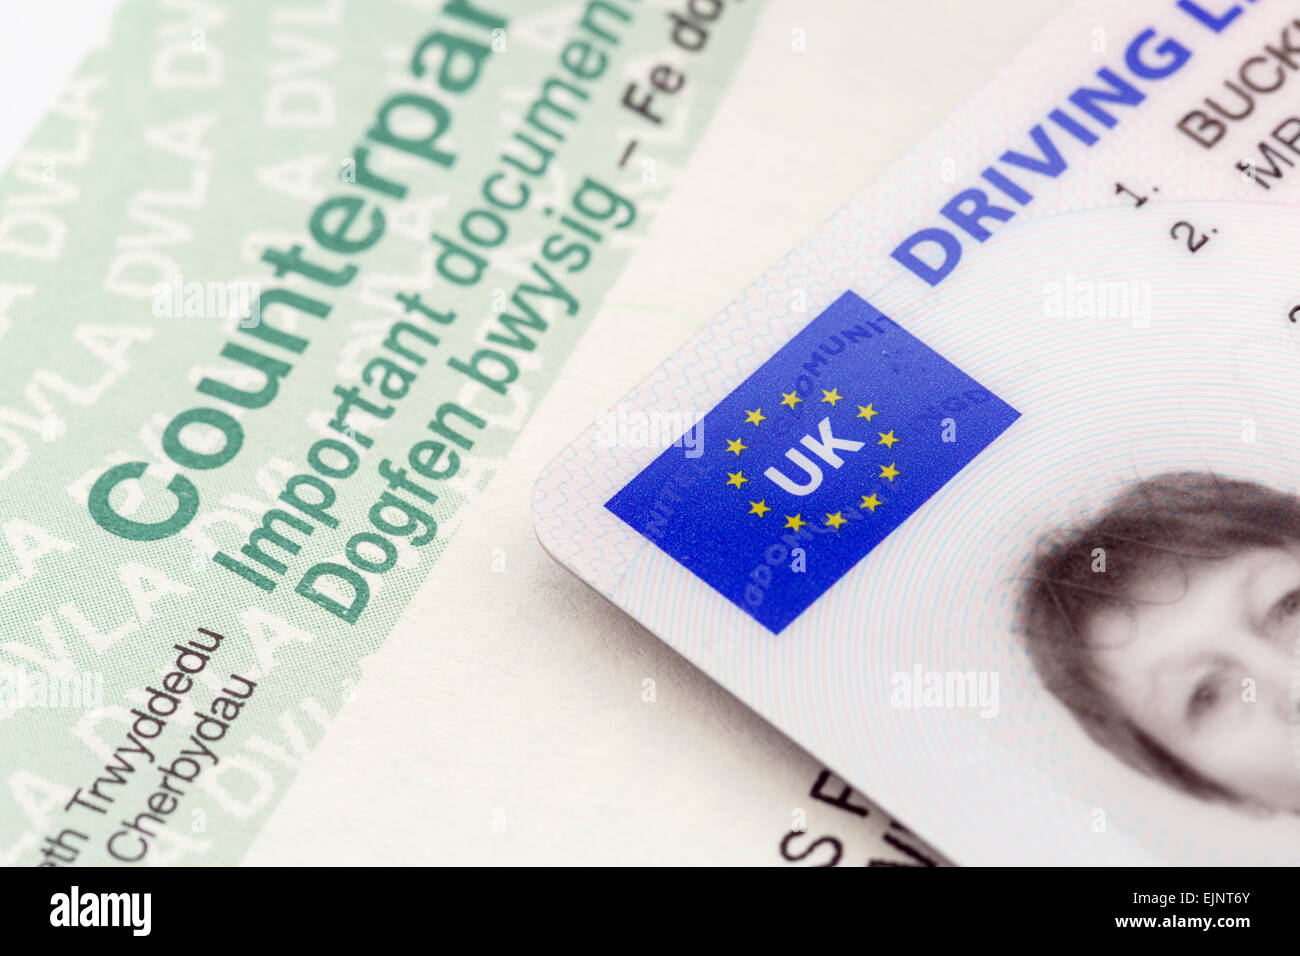 Driving Licence Stock Photos & Driving Licence Stock Images